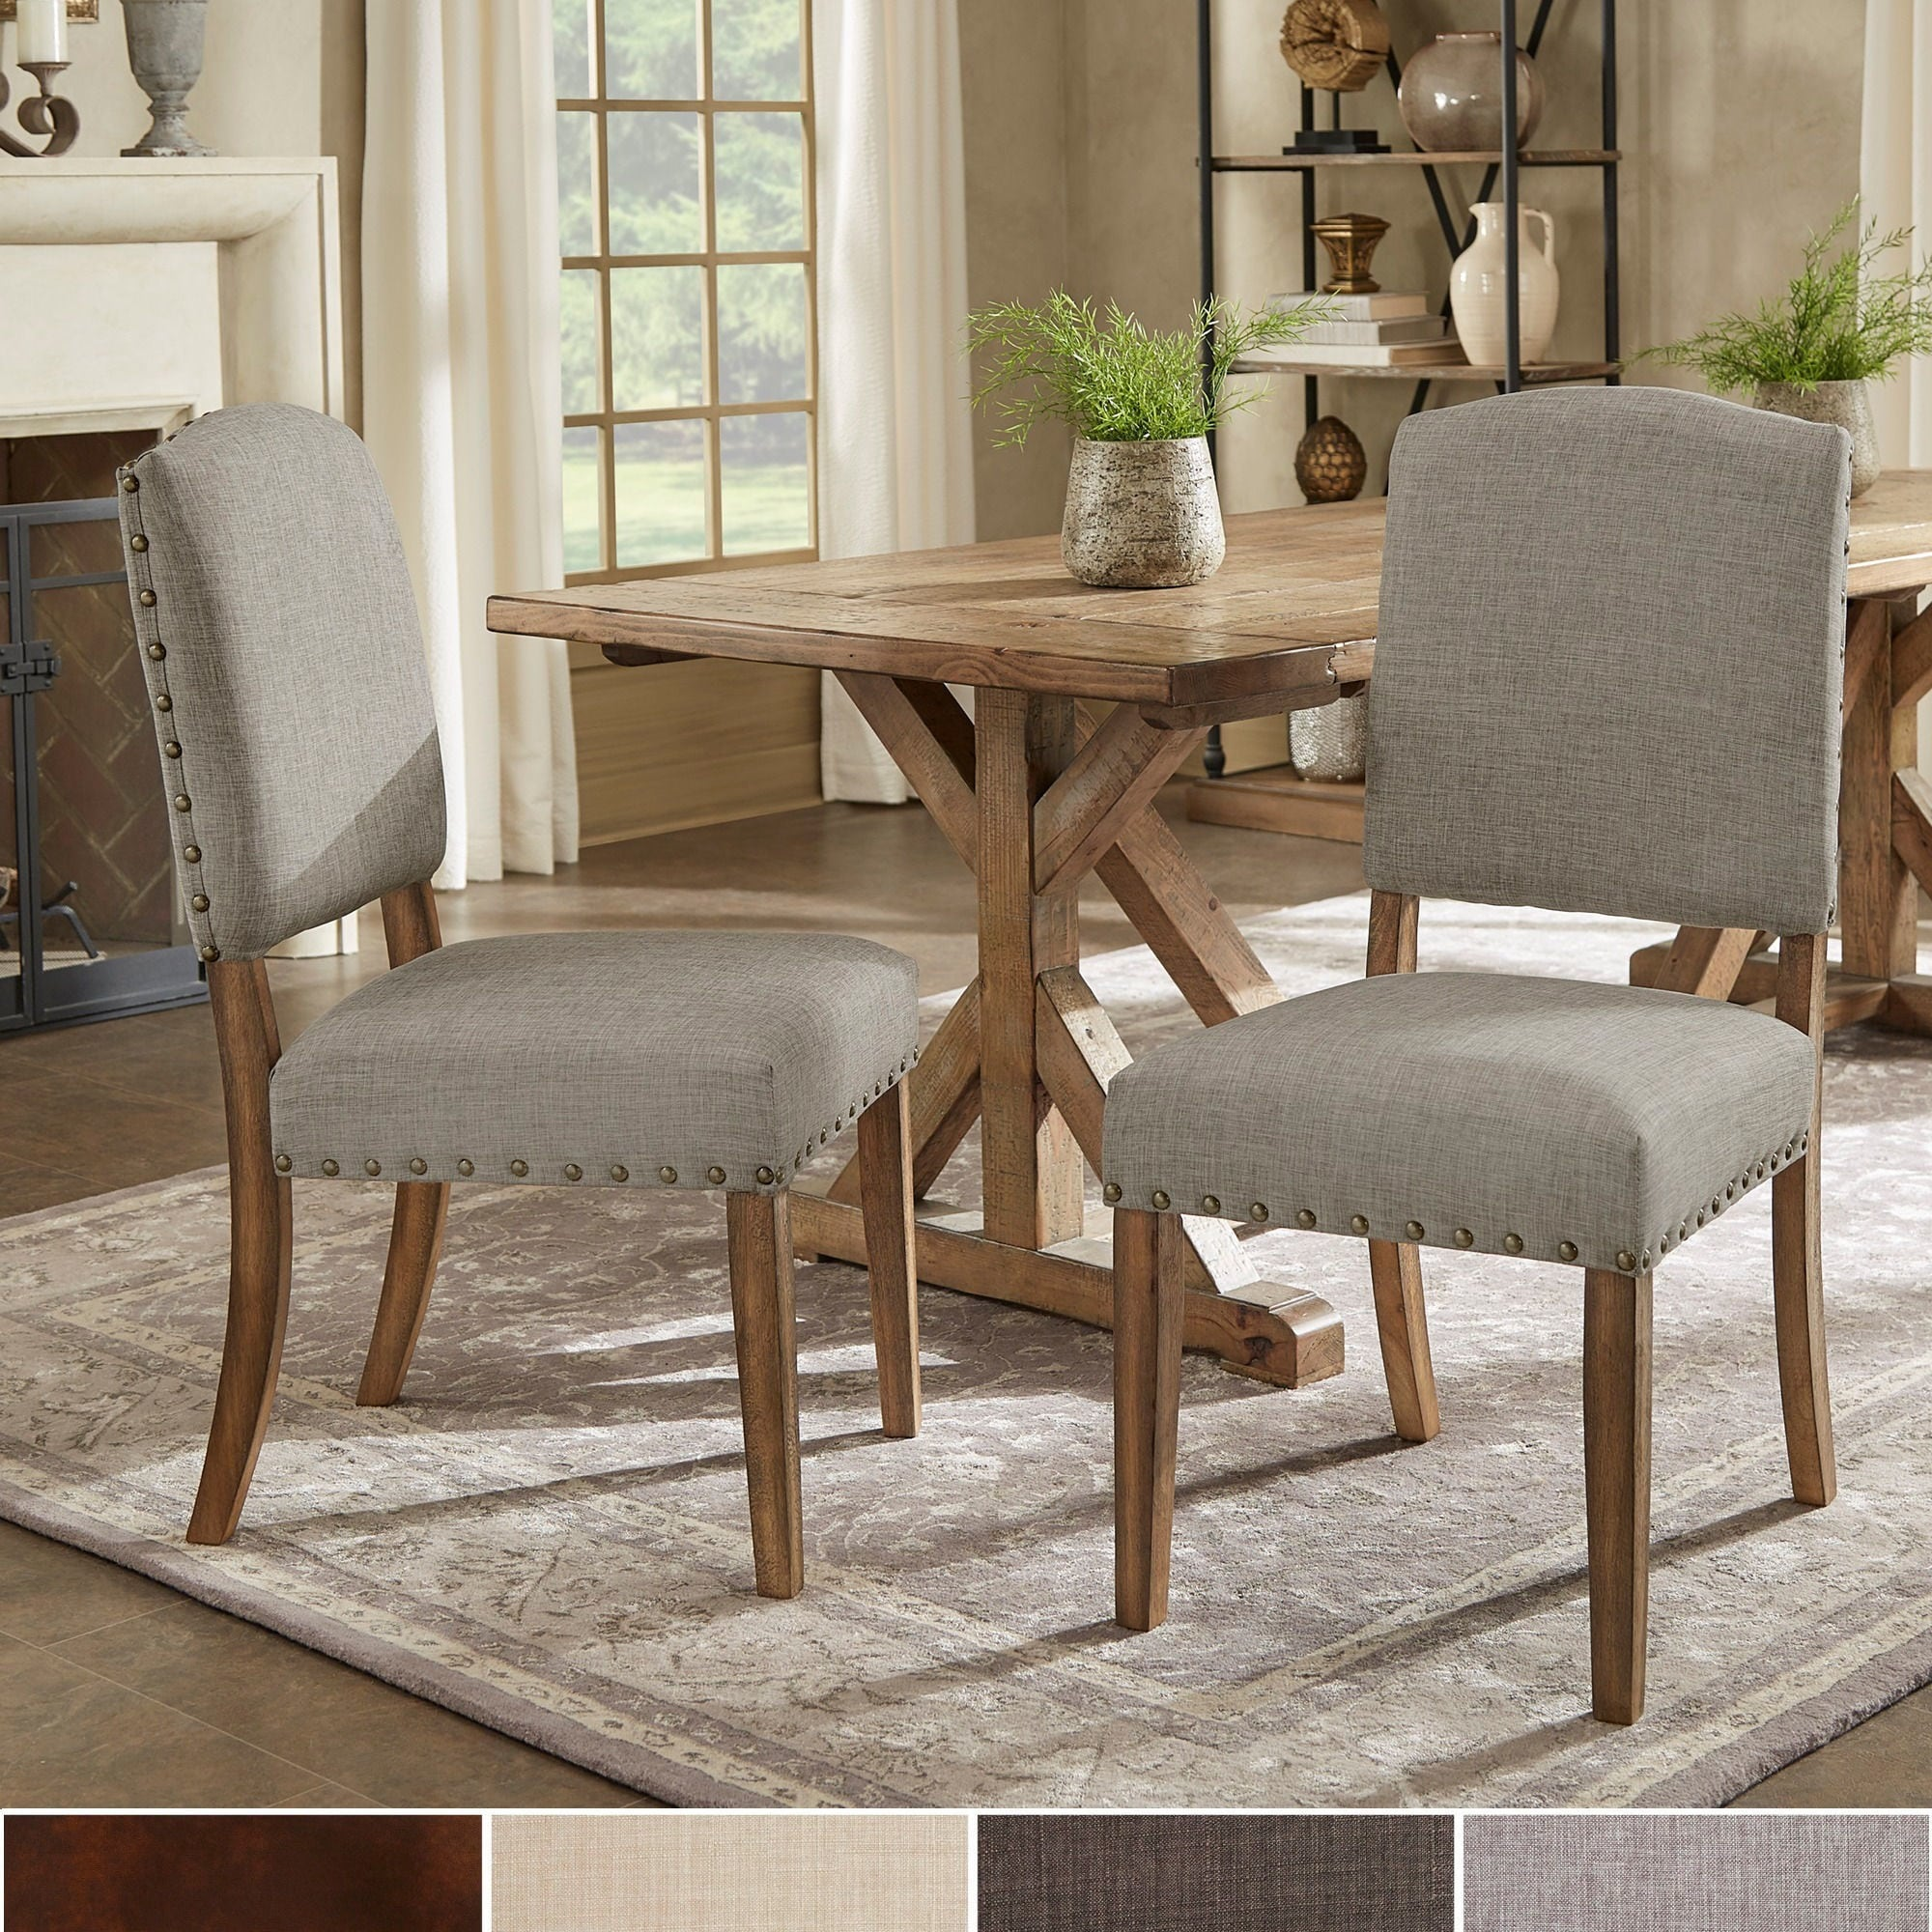 Captivating Benchwright Premium Nailhead Upholstered Dining Chairs (Set Of 2) By  INSPIRE Q Artisan